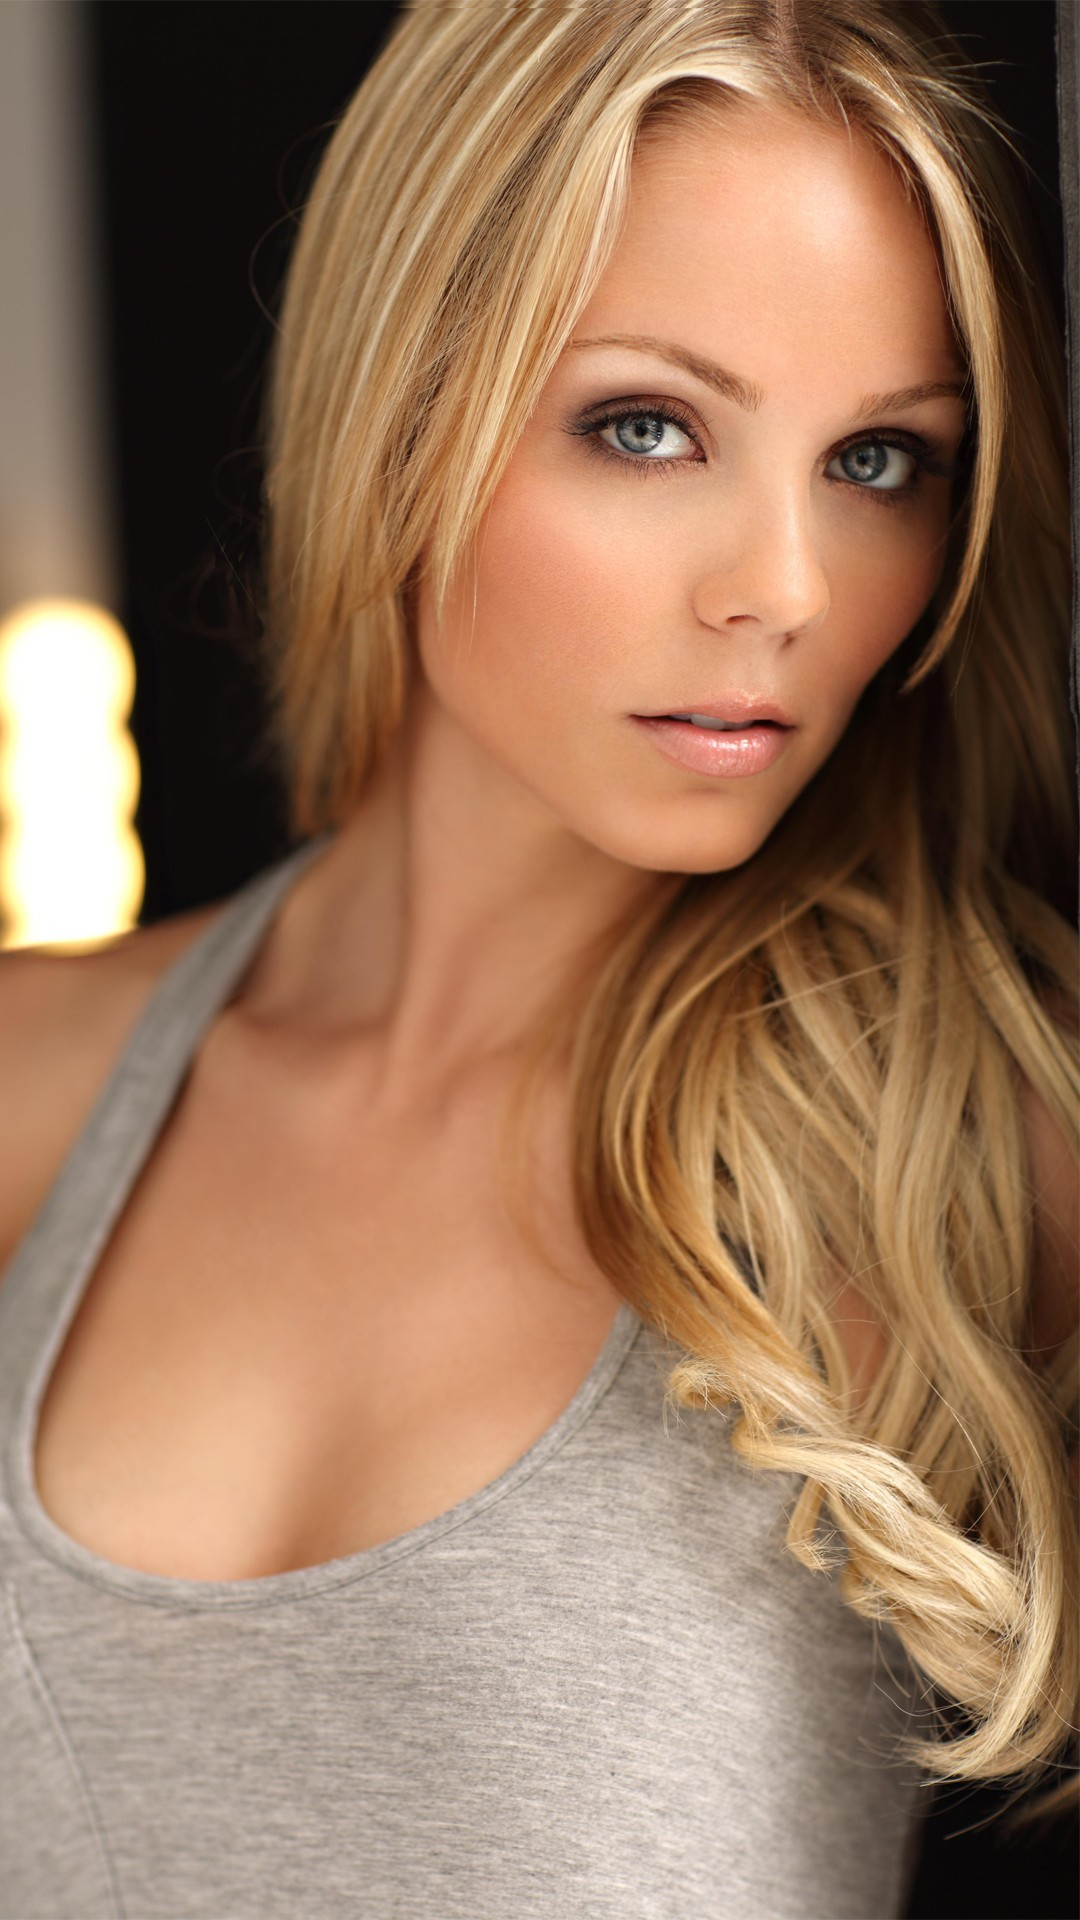 Laura Vandervoort Wallpapers, HD Images Laura Vandervoort ...